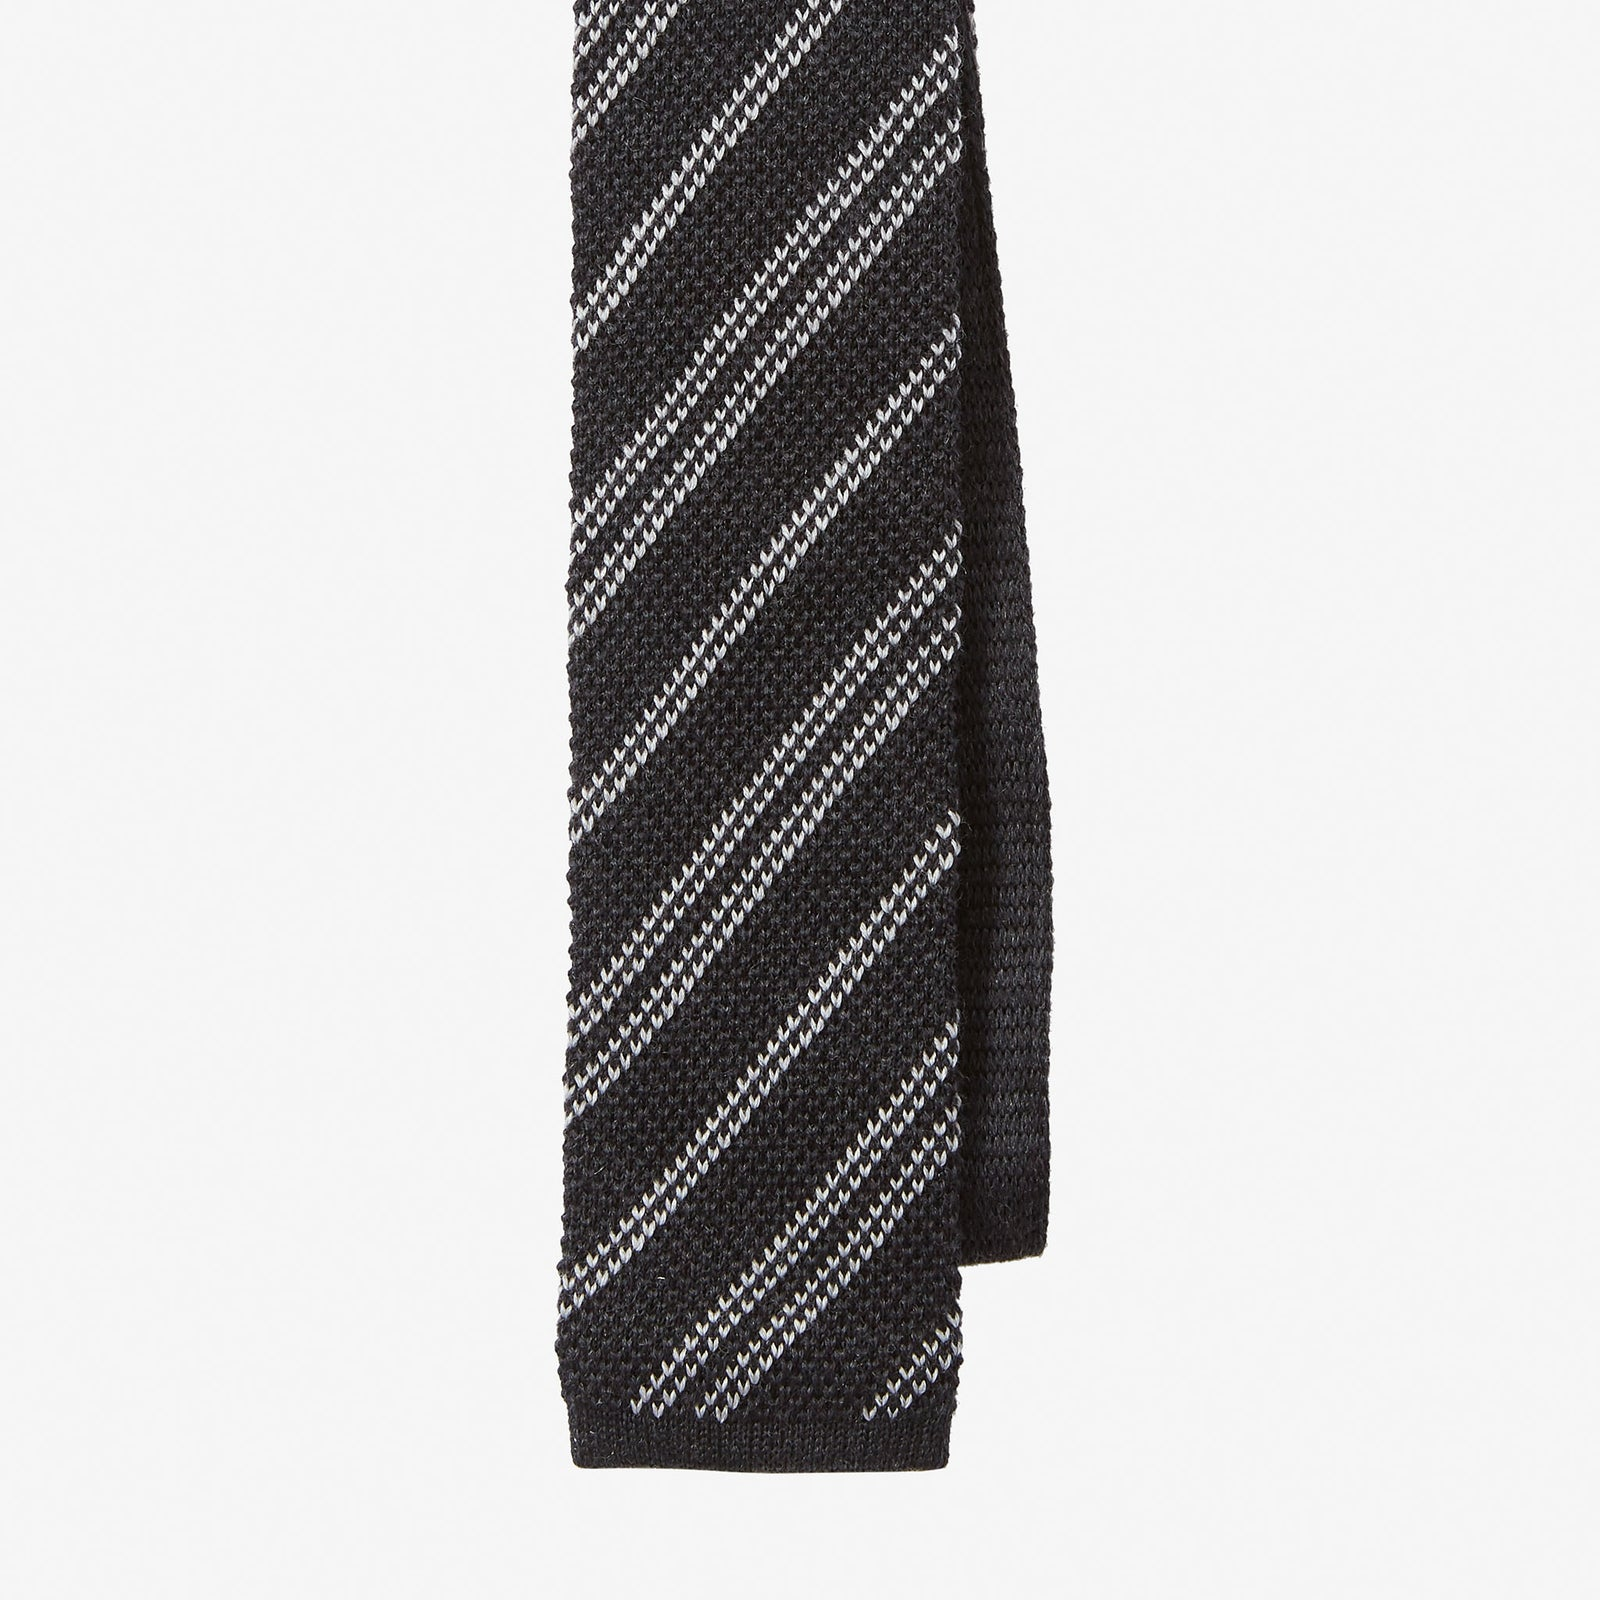 Knit Tie Wool Stripe Charcoal Grey